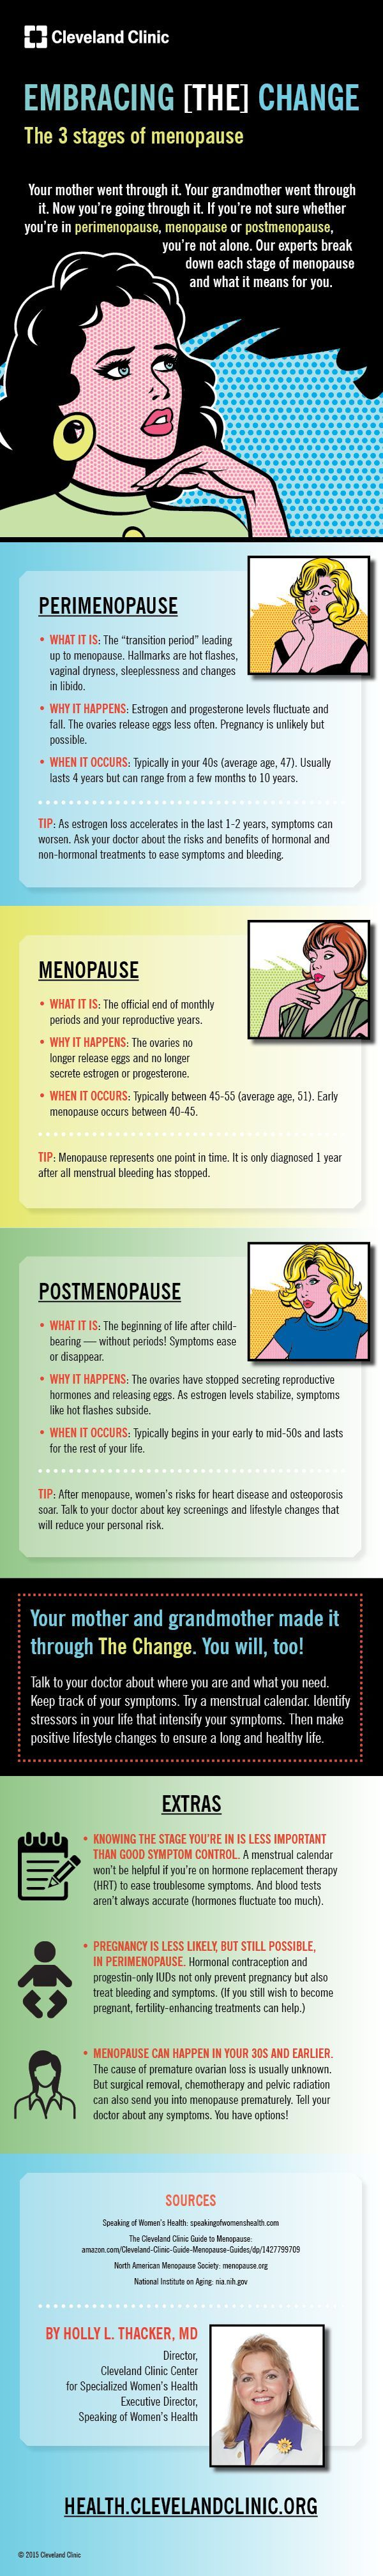 Embracing the change: the three stages of menopause. (via @Cleveland Clinic)